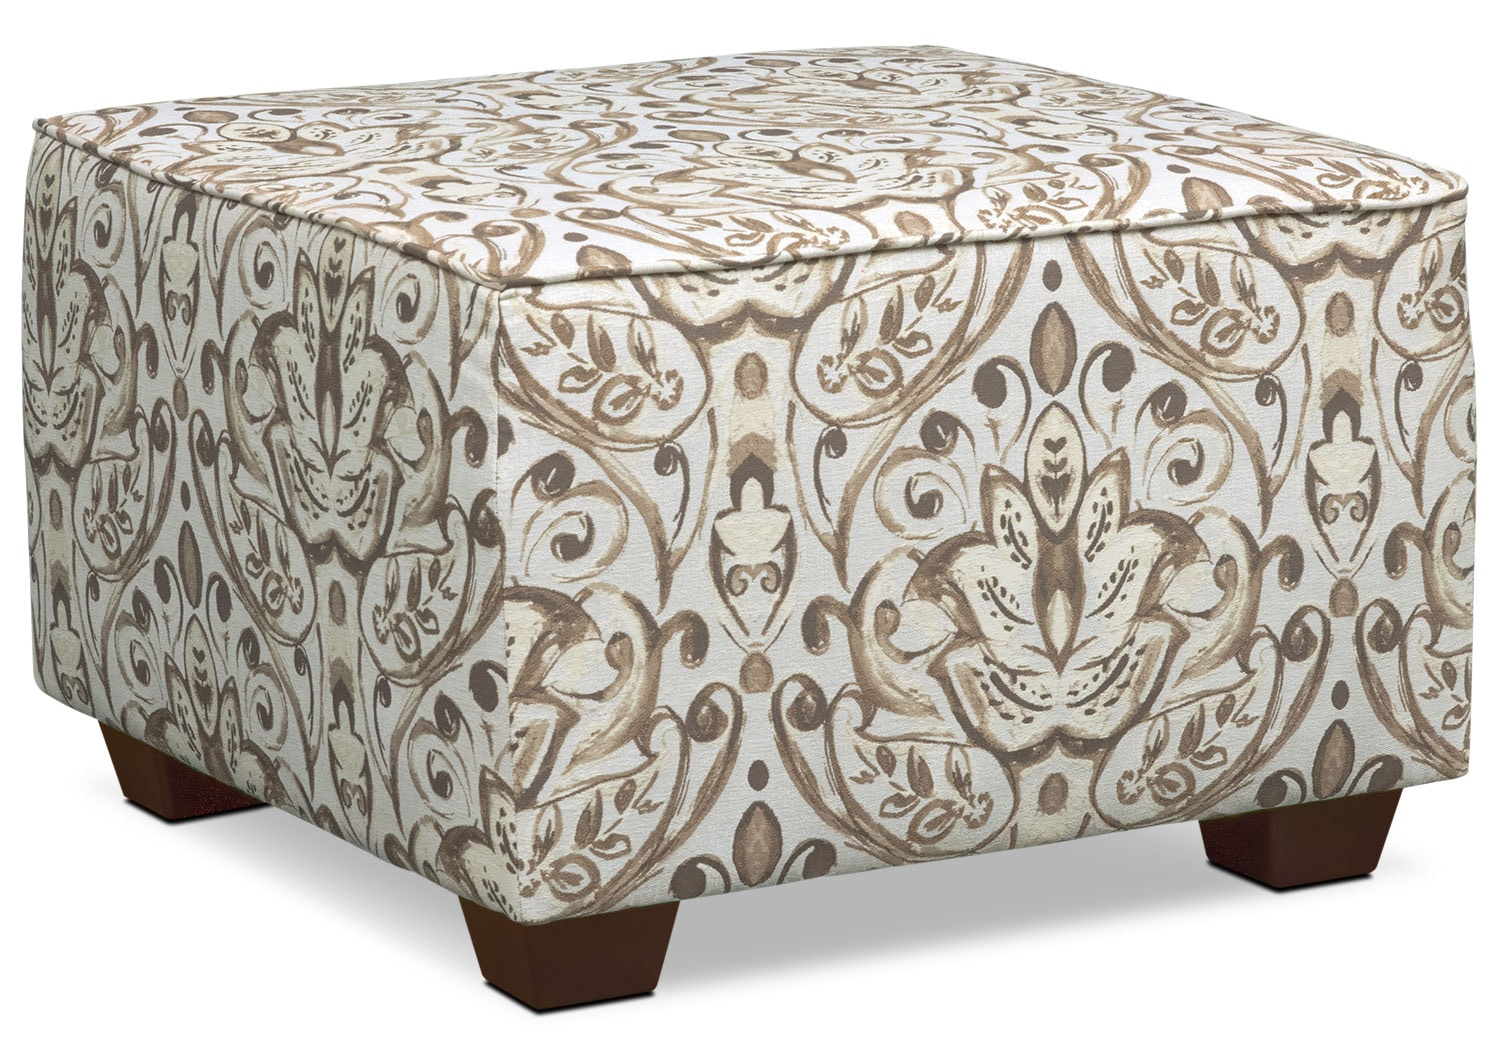 Living Room Furniture - Mckenna Accent Ottoman - Multi Sand